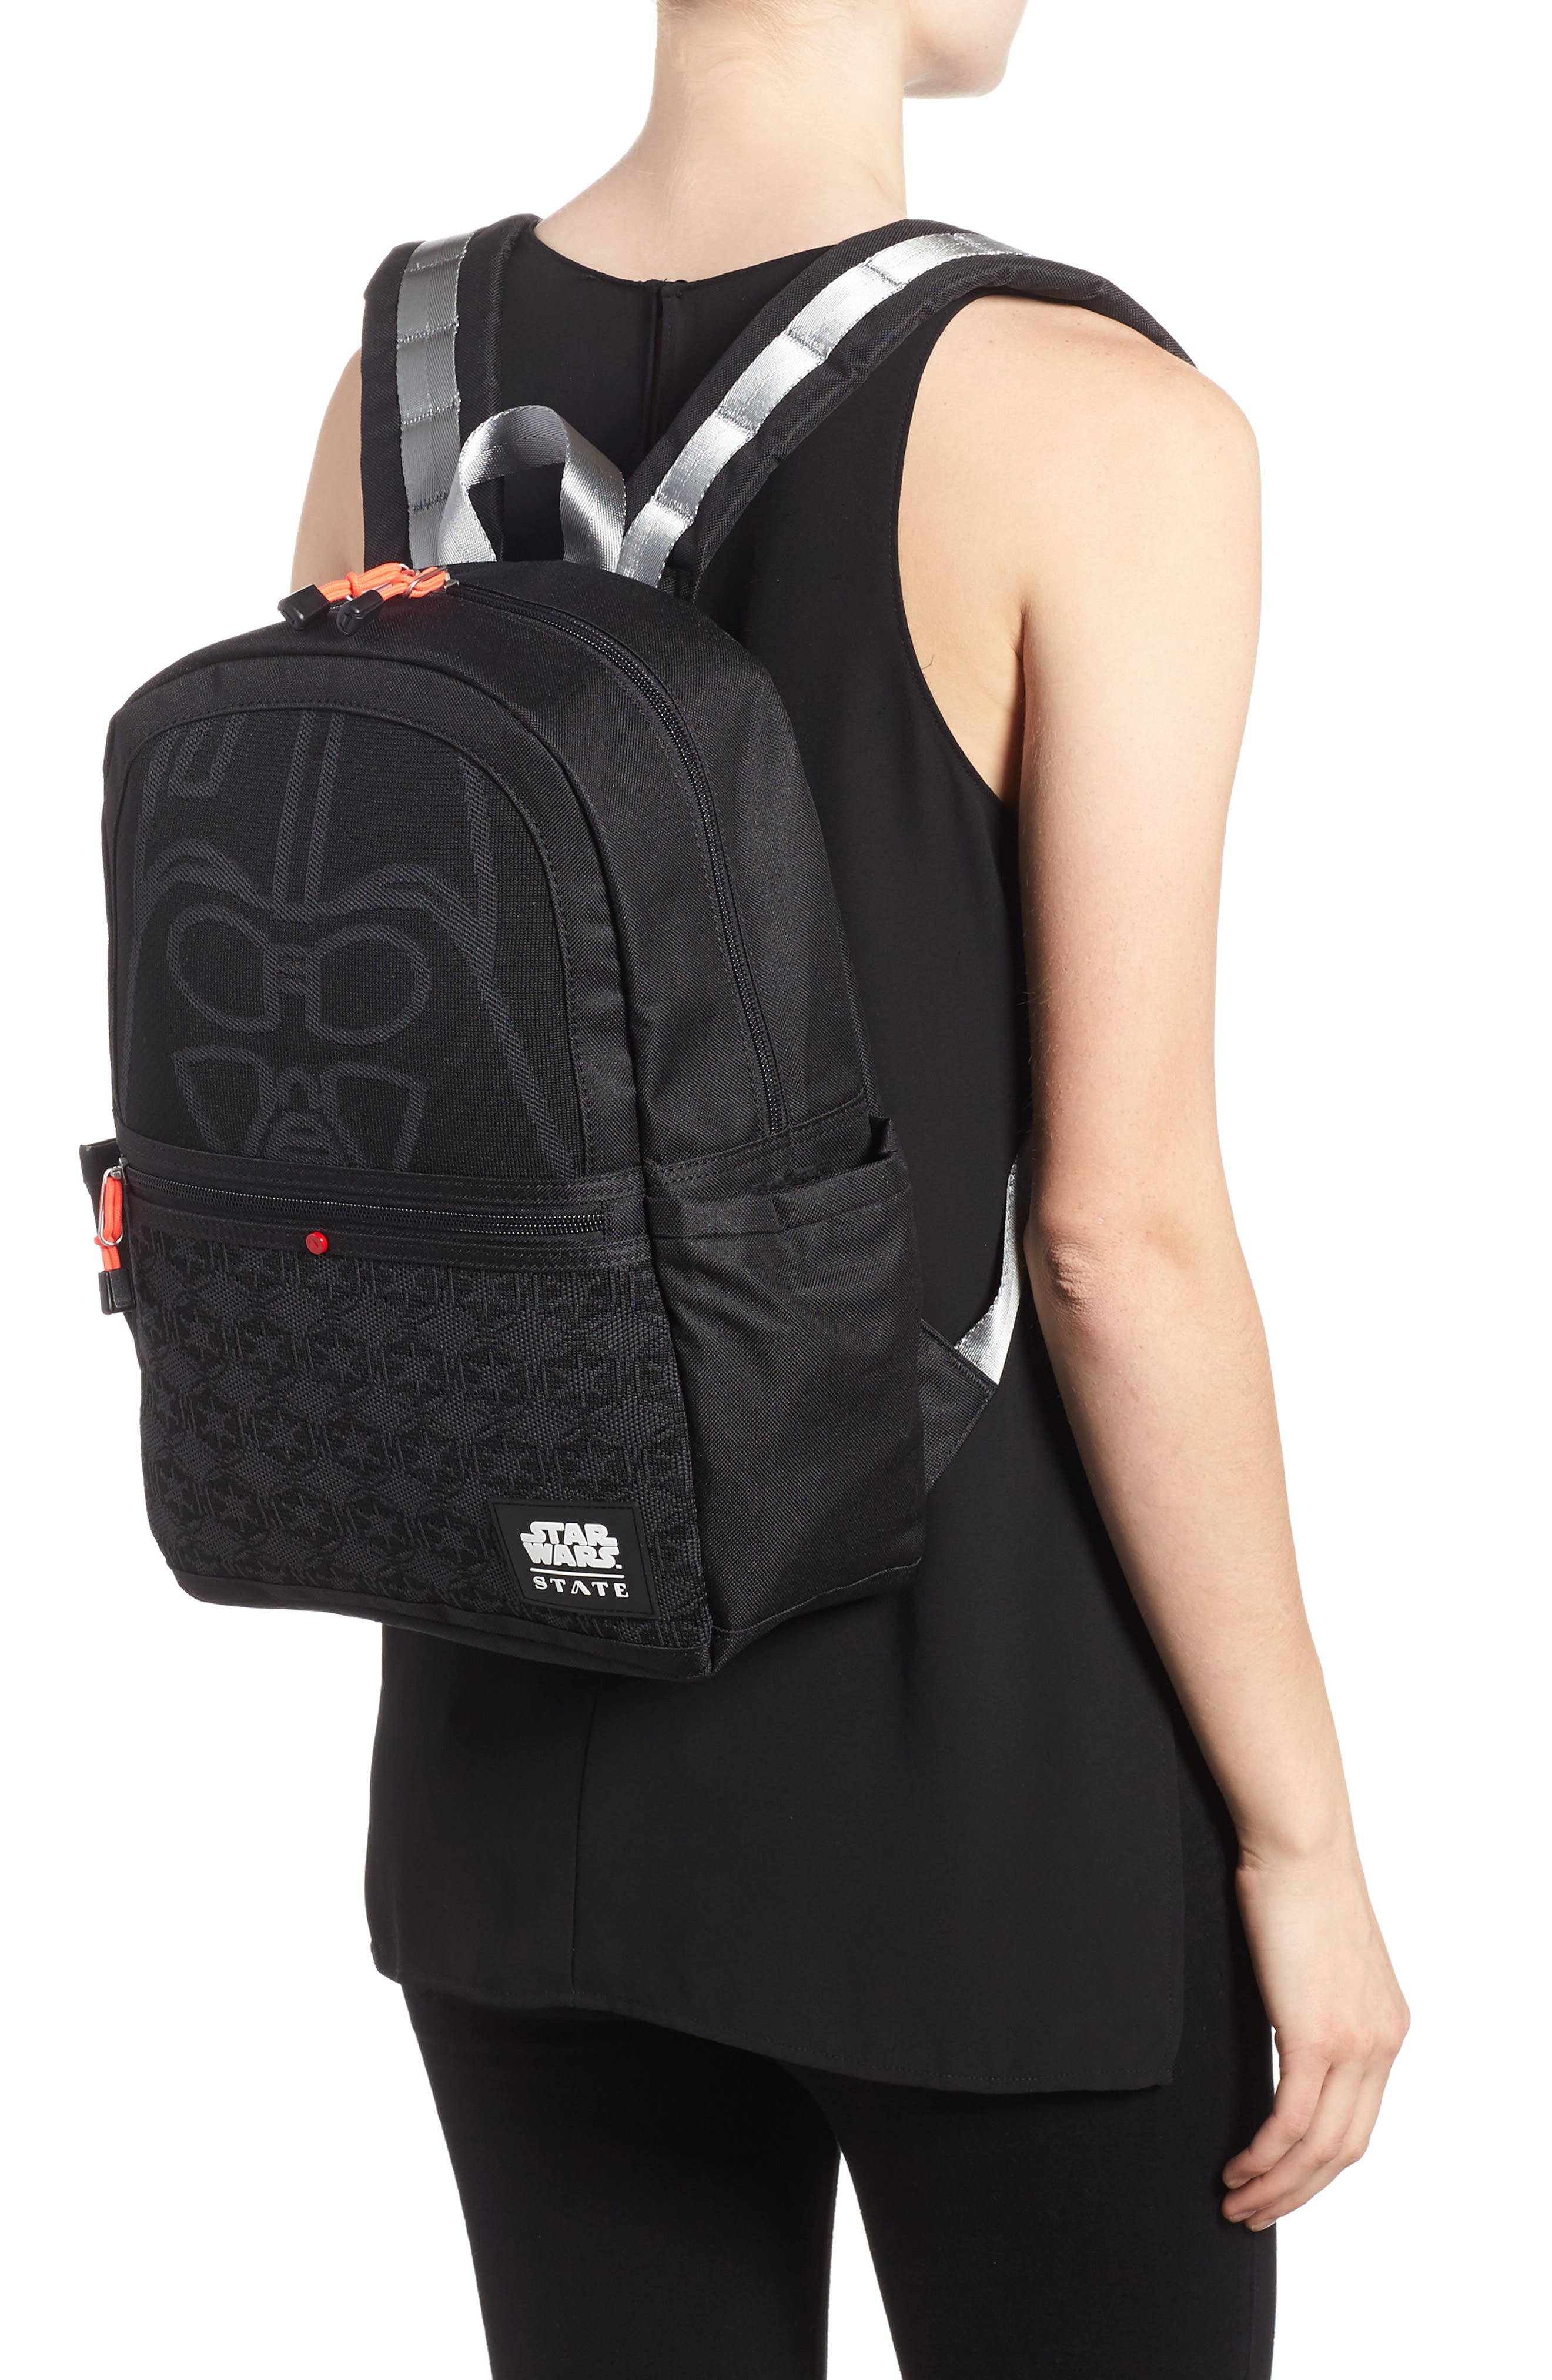 Star Wars<sup>™</sup> - Darth Vader Kane Backpack,                             Alternate thumbnail 2, color,                             001